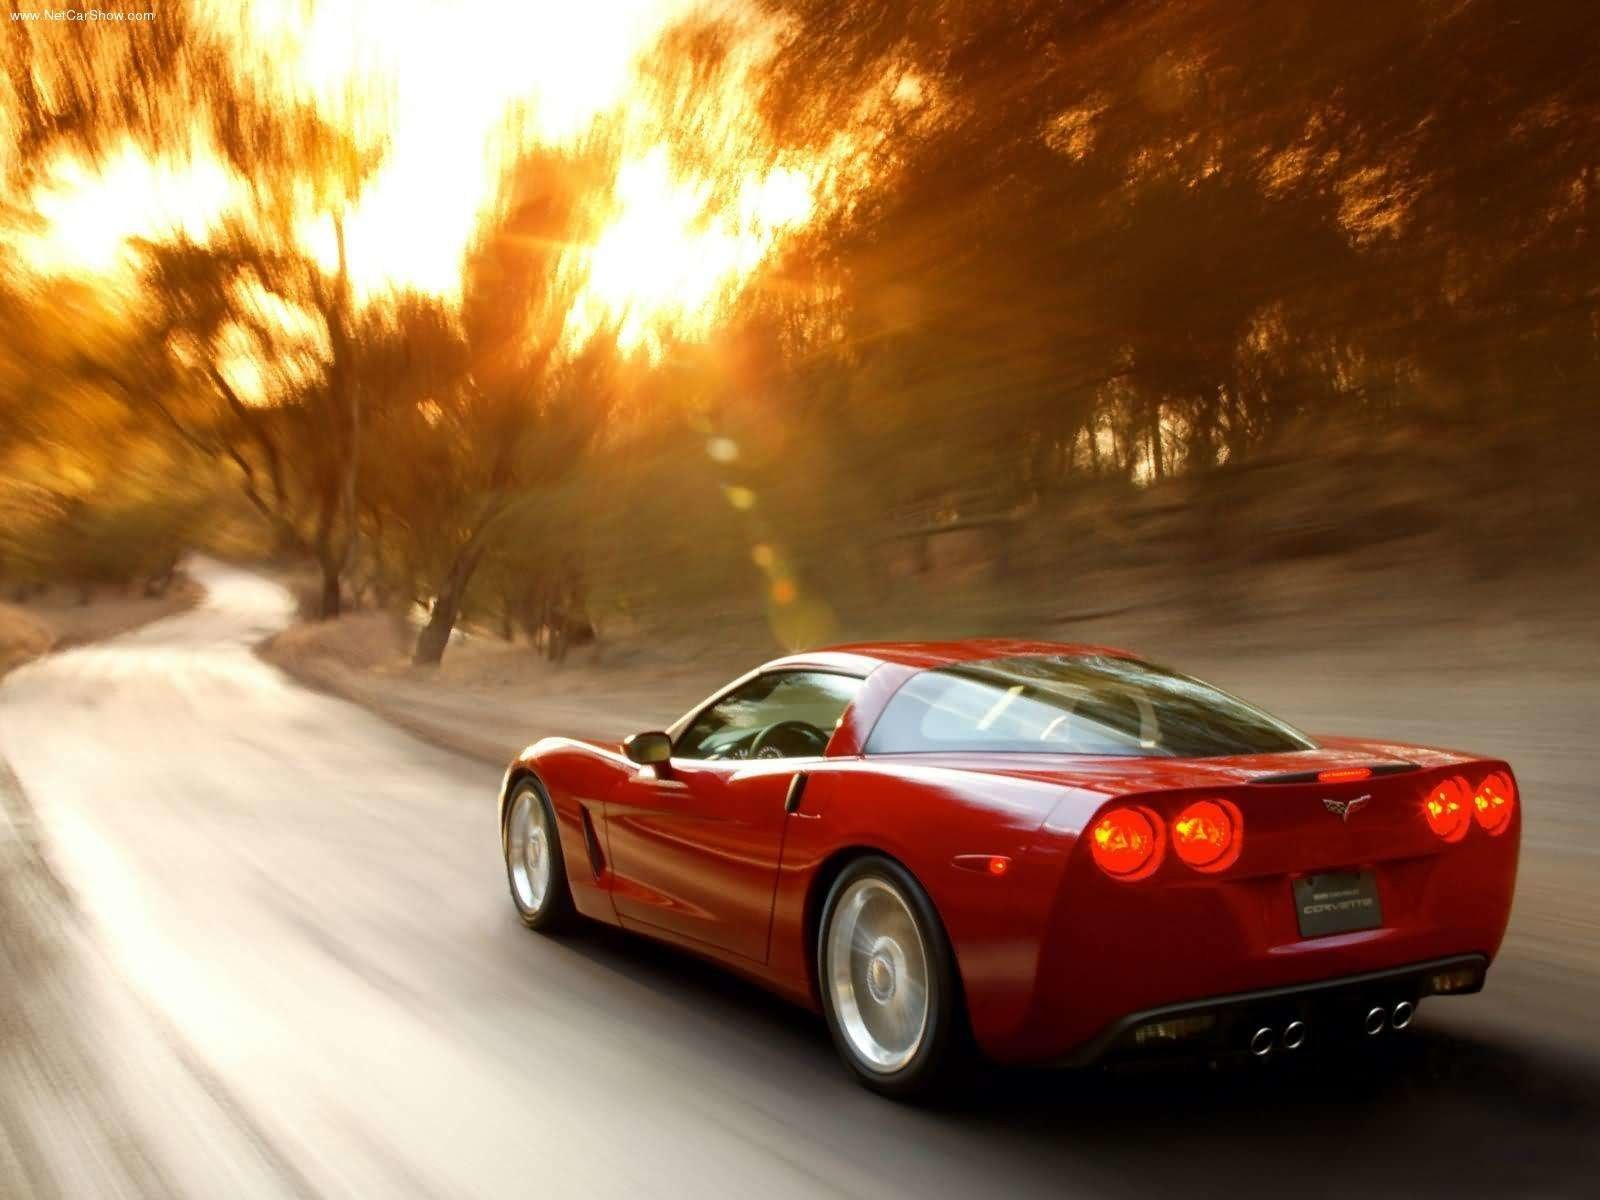 473 Corvette HD Wallpapers | Background Images - Wallpaper Abyss